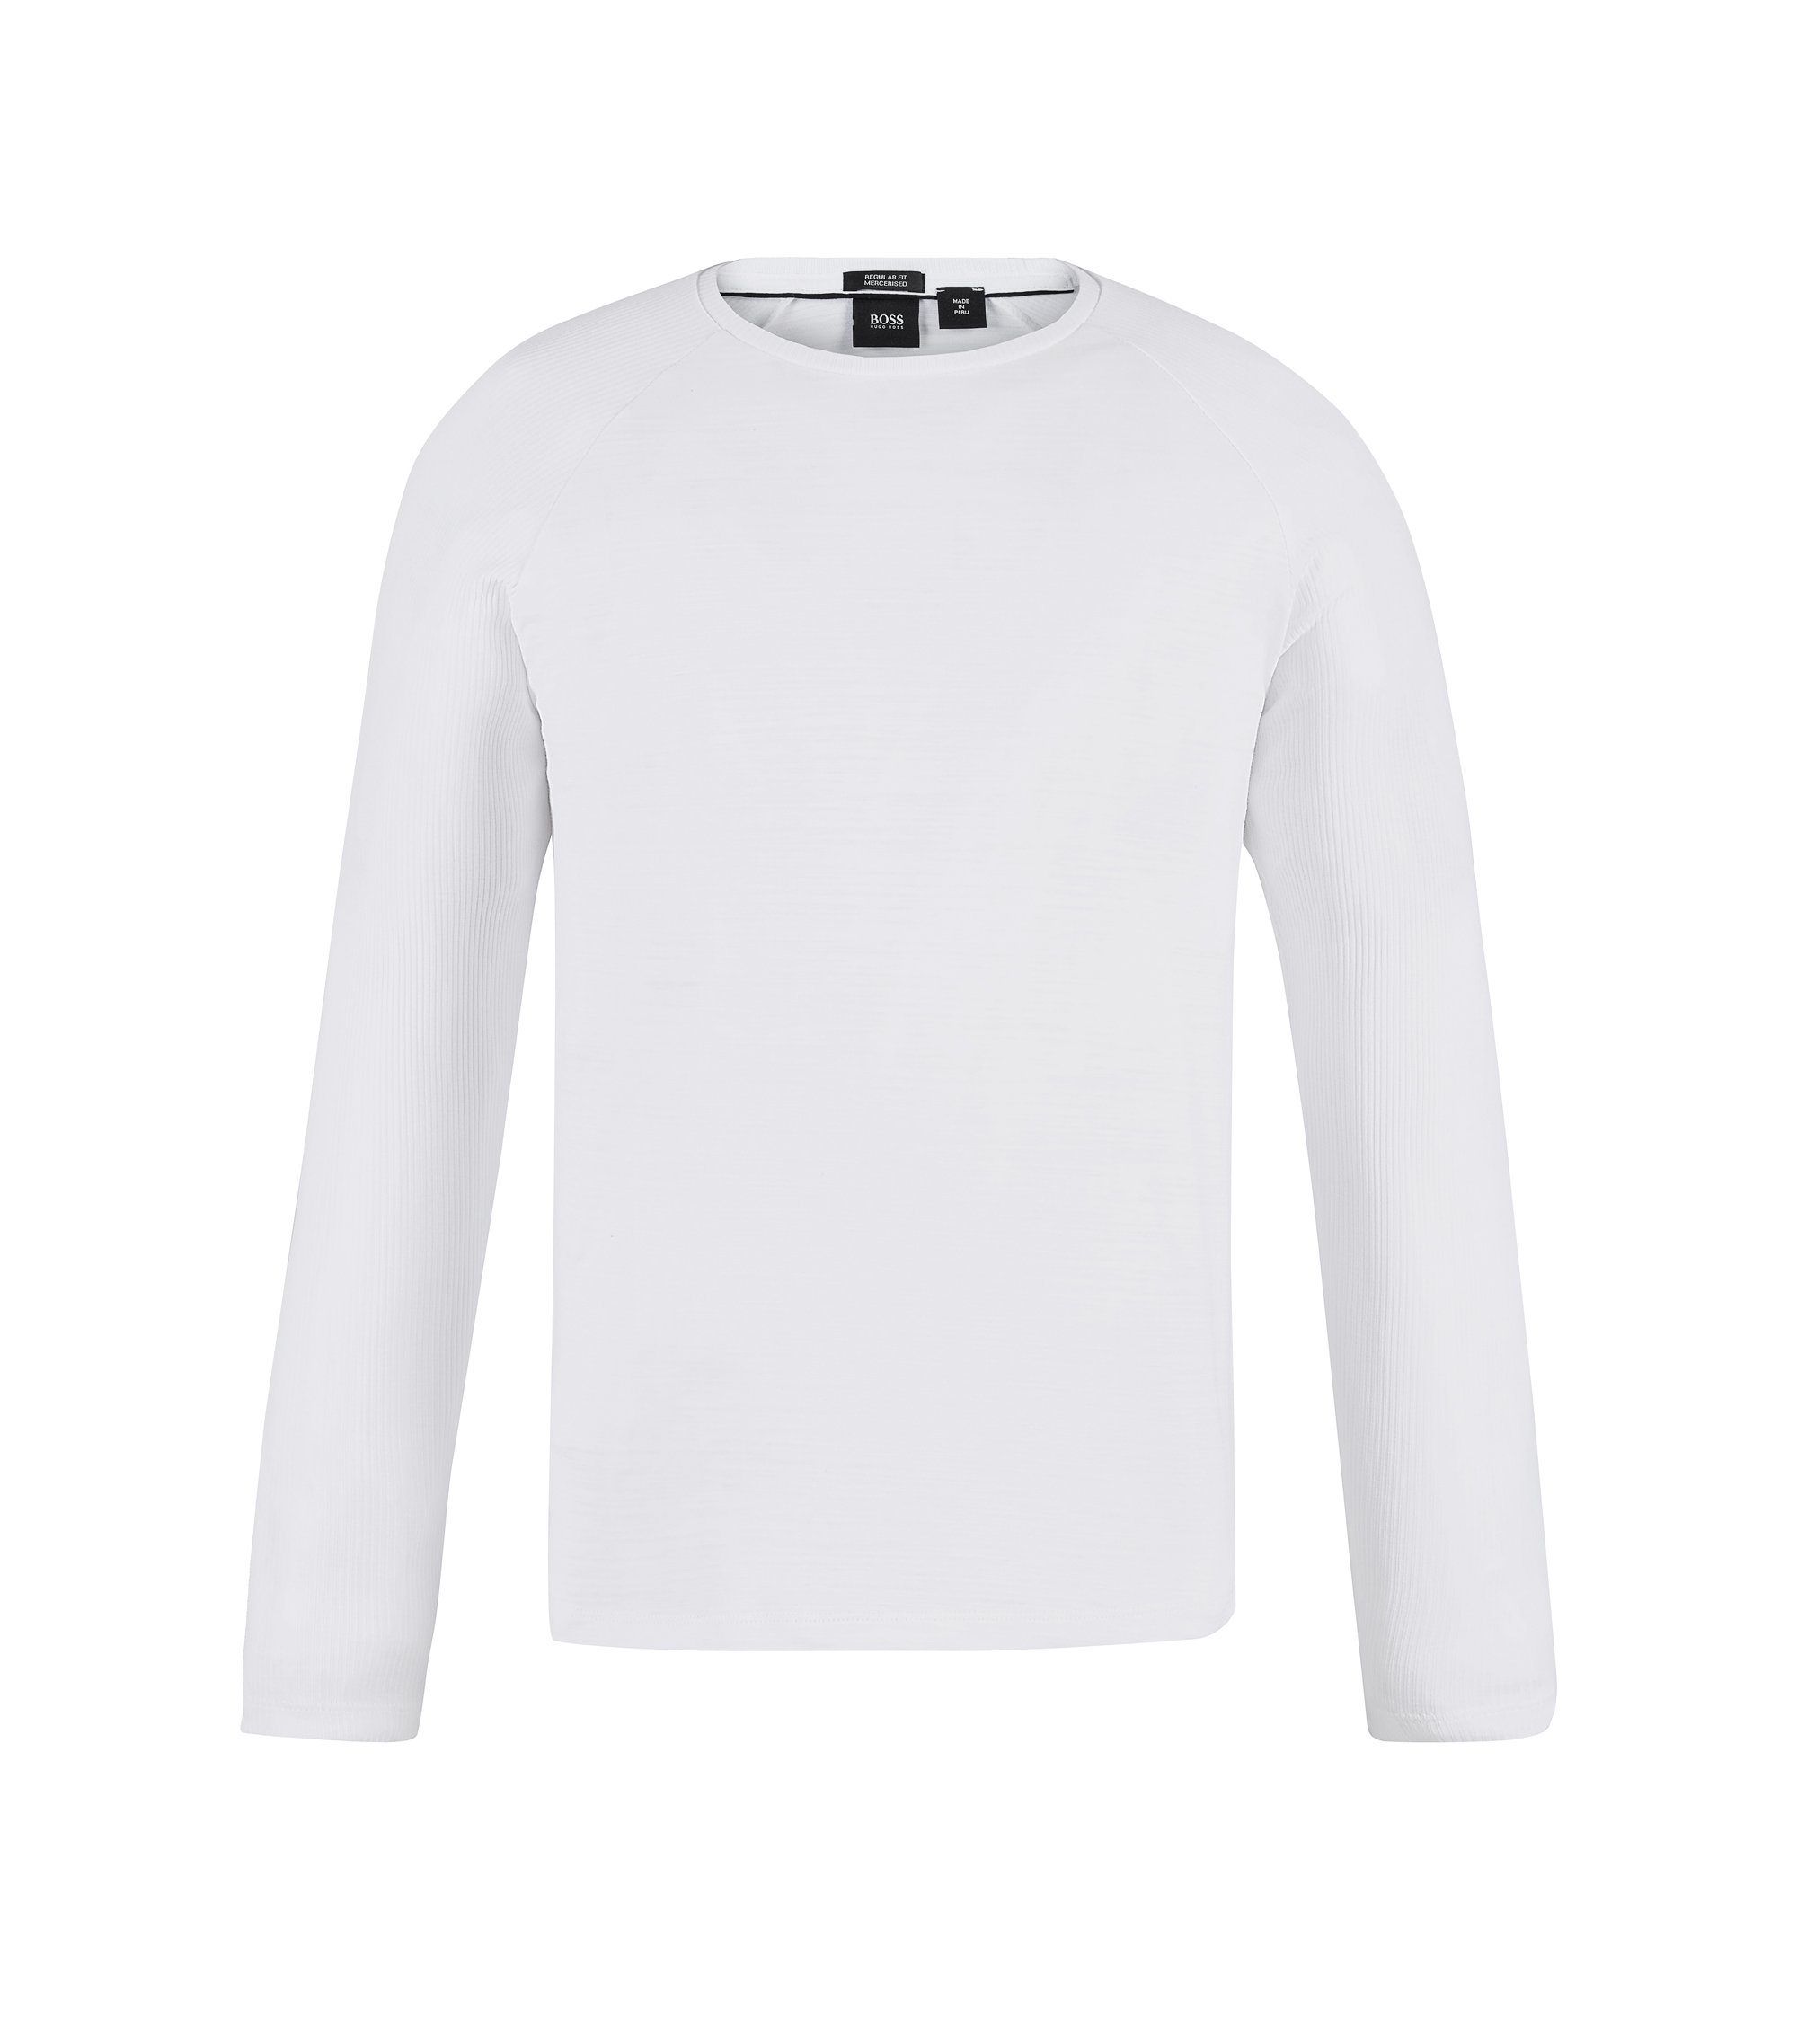 Cotton Long-Sleeved T-Shirt | Terell, White